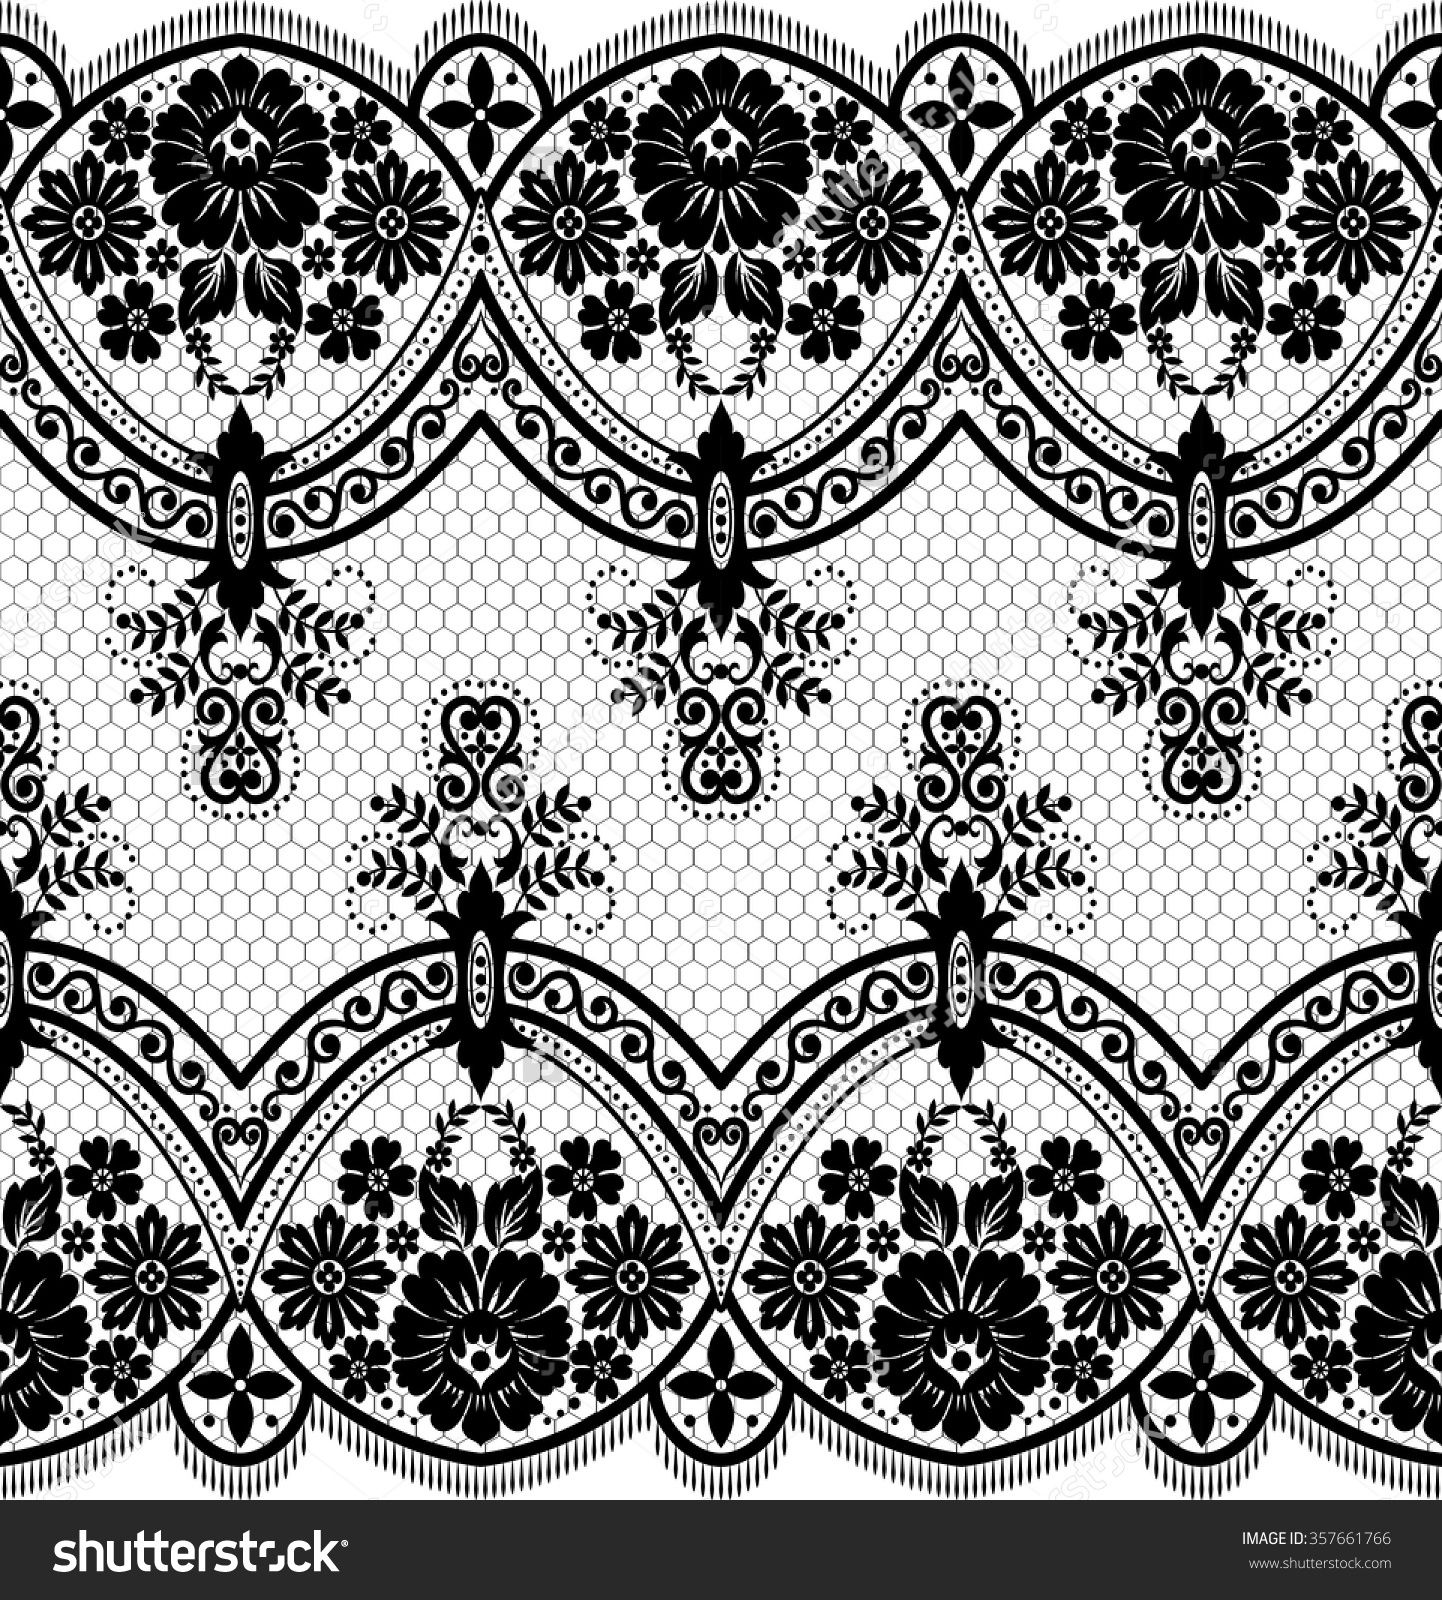 Seamless Lace Pattern Flower Vintage Vector Background Border